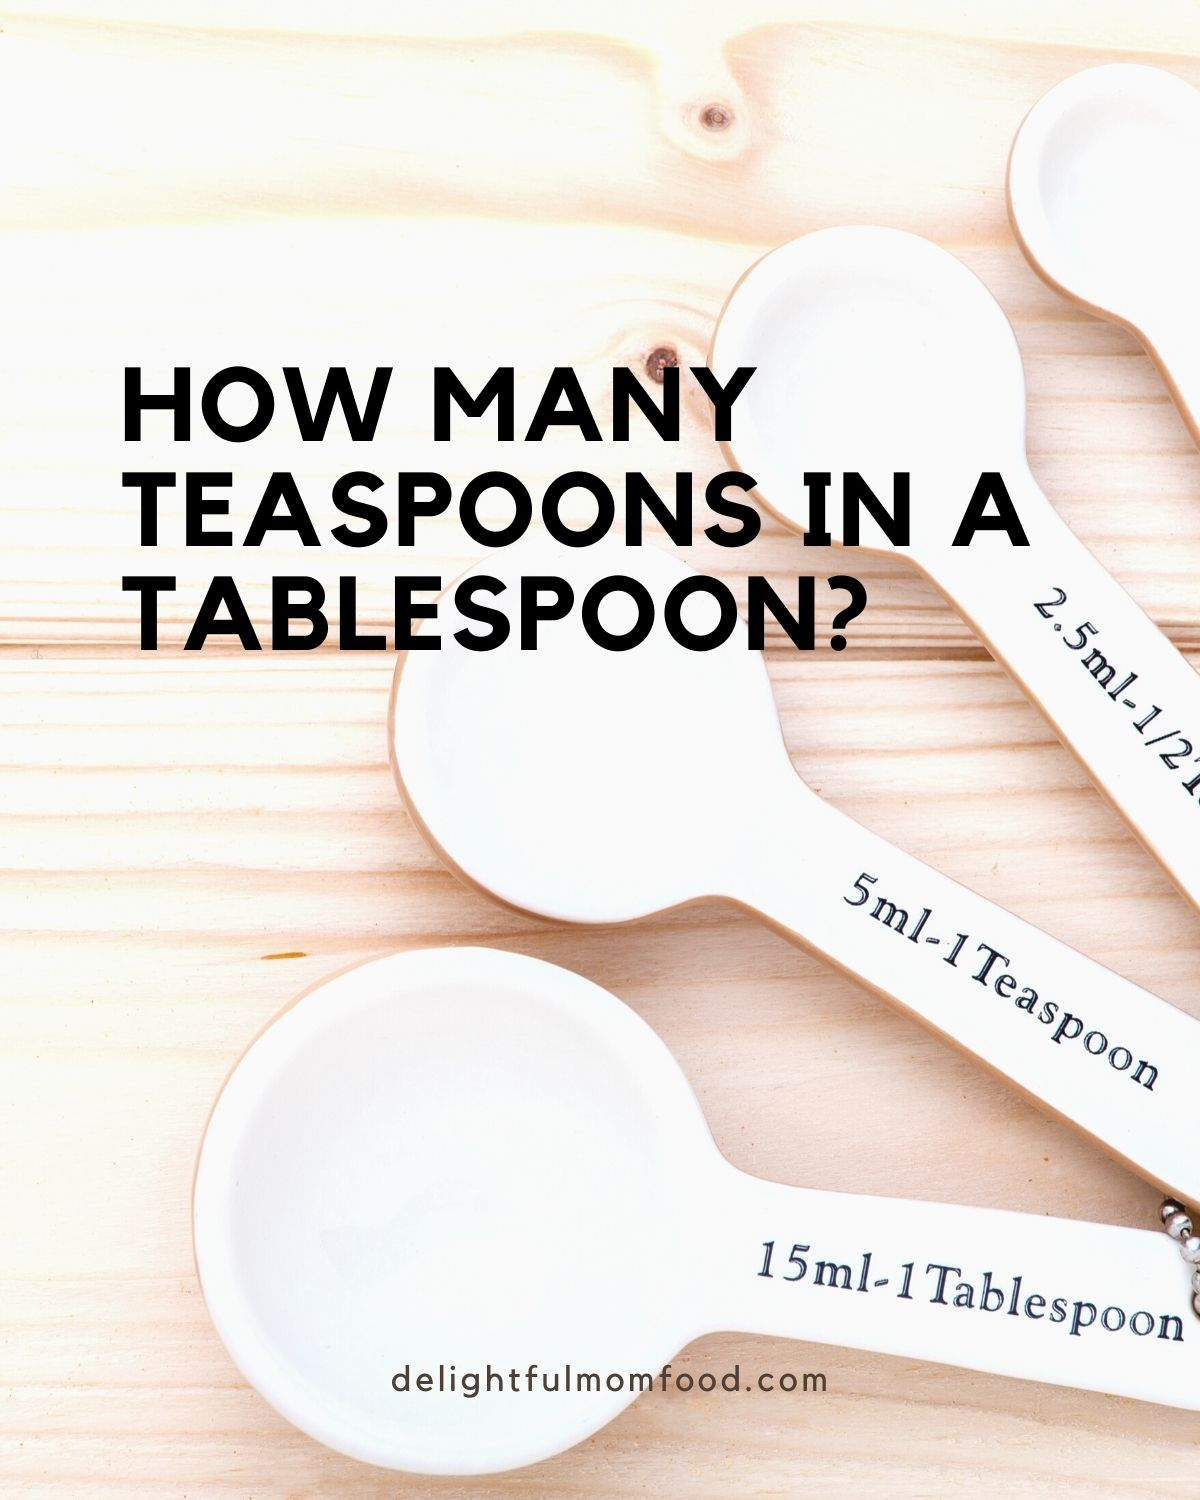 how many teaspoons in a tablespoon